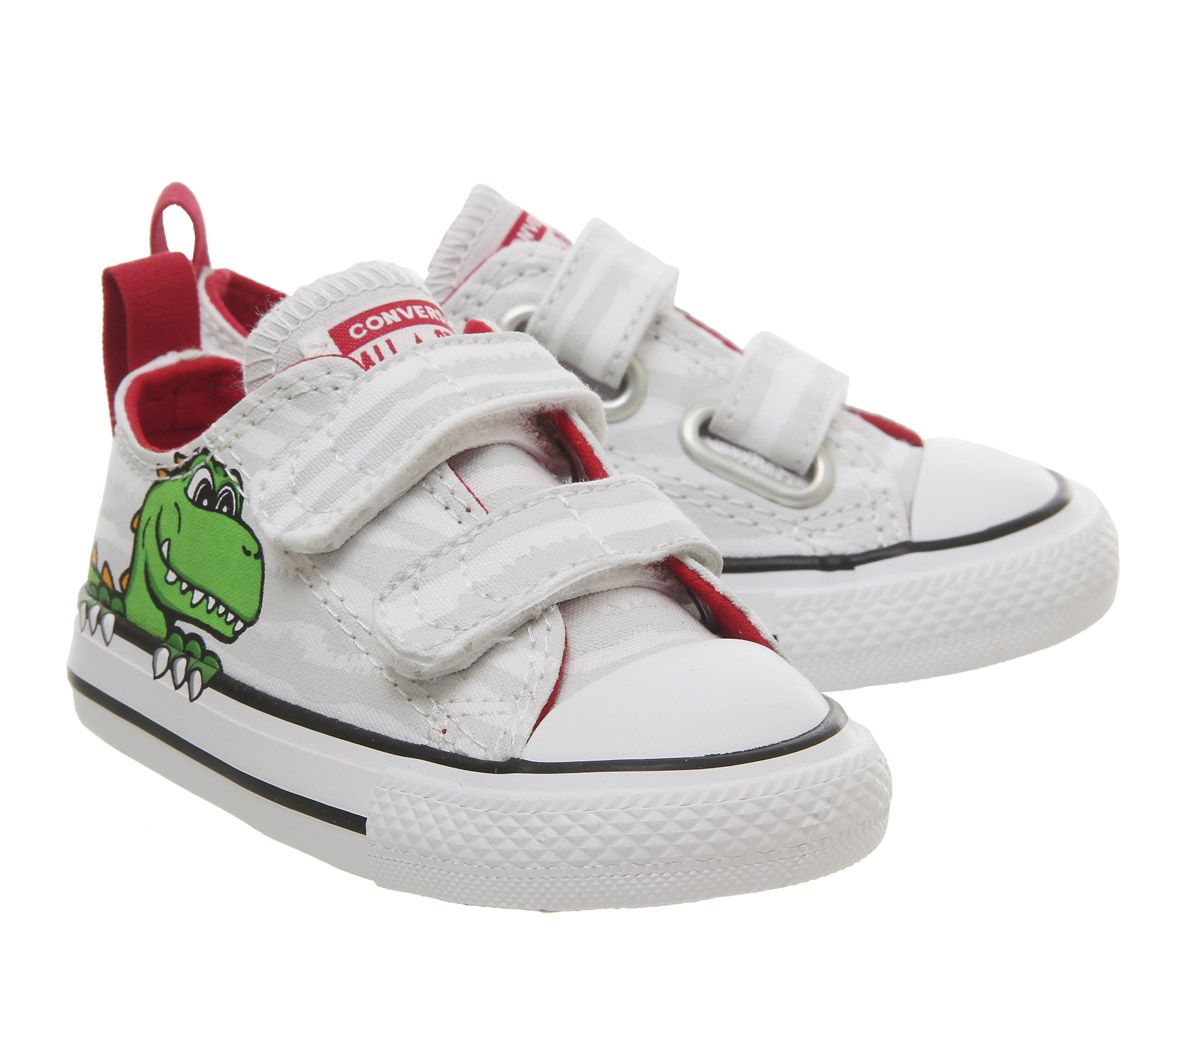 big sale 6801a db859 Sentinel Kids Converse All Star 2Vlace Trainers White Dinosaur Face Kids